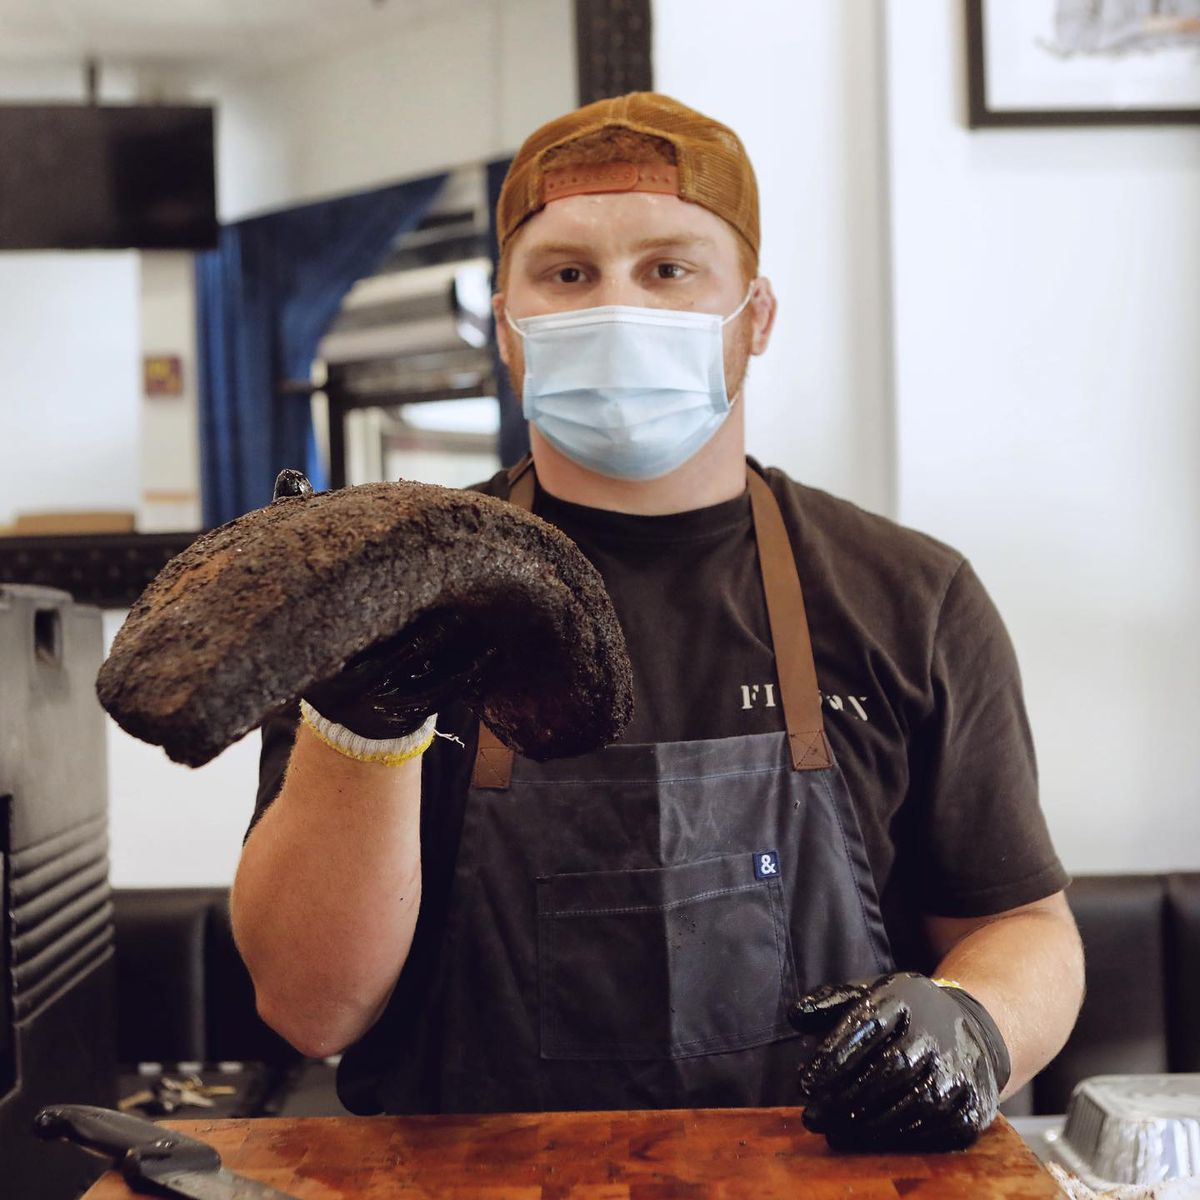 A man in a mask shows off a brisket in one hand, just off the pit.